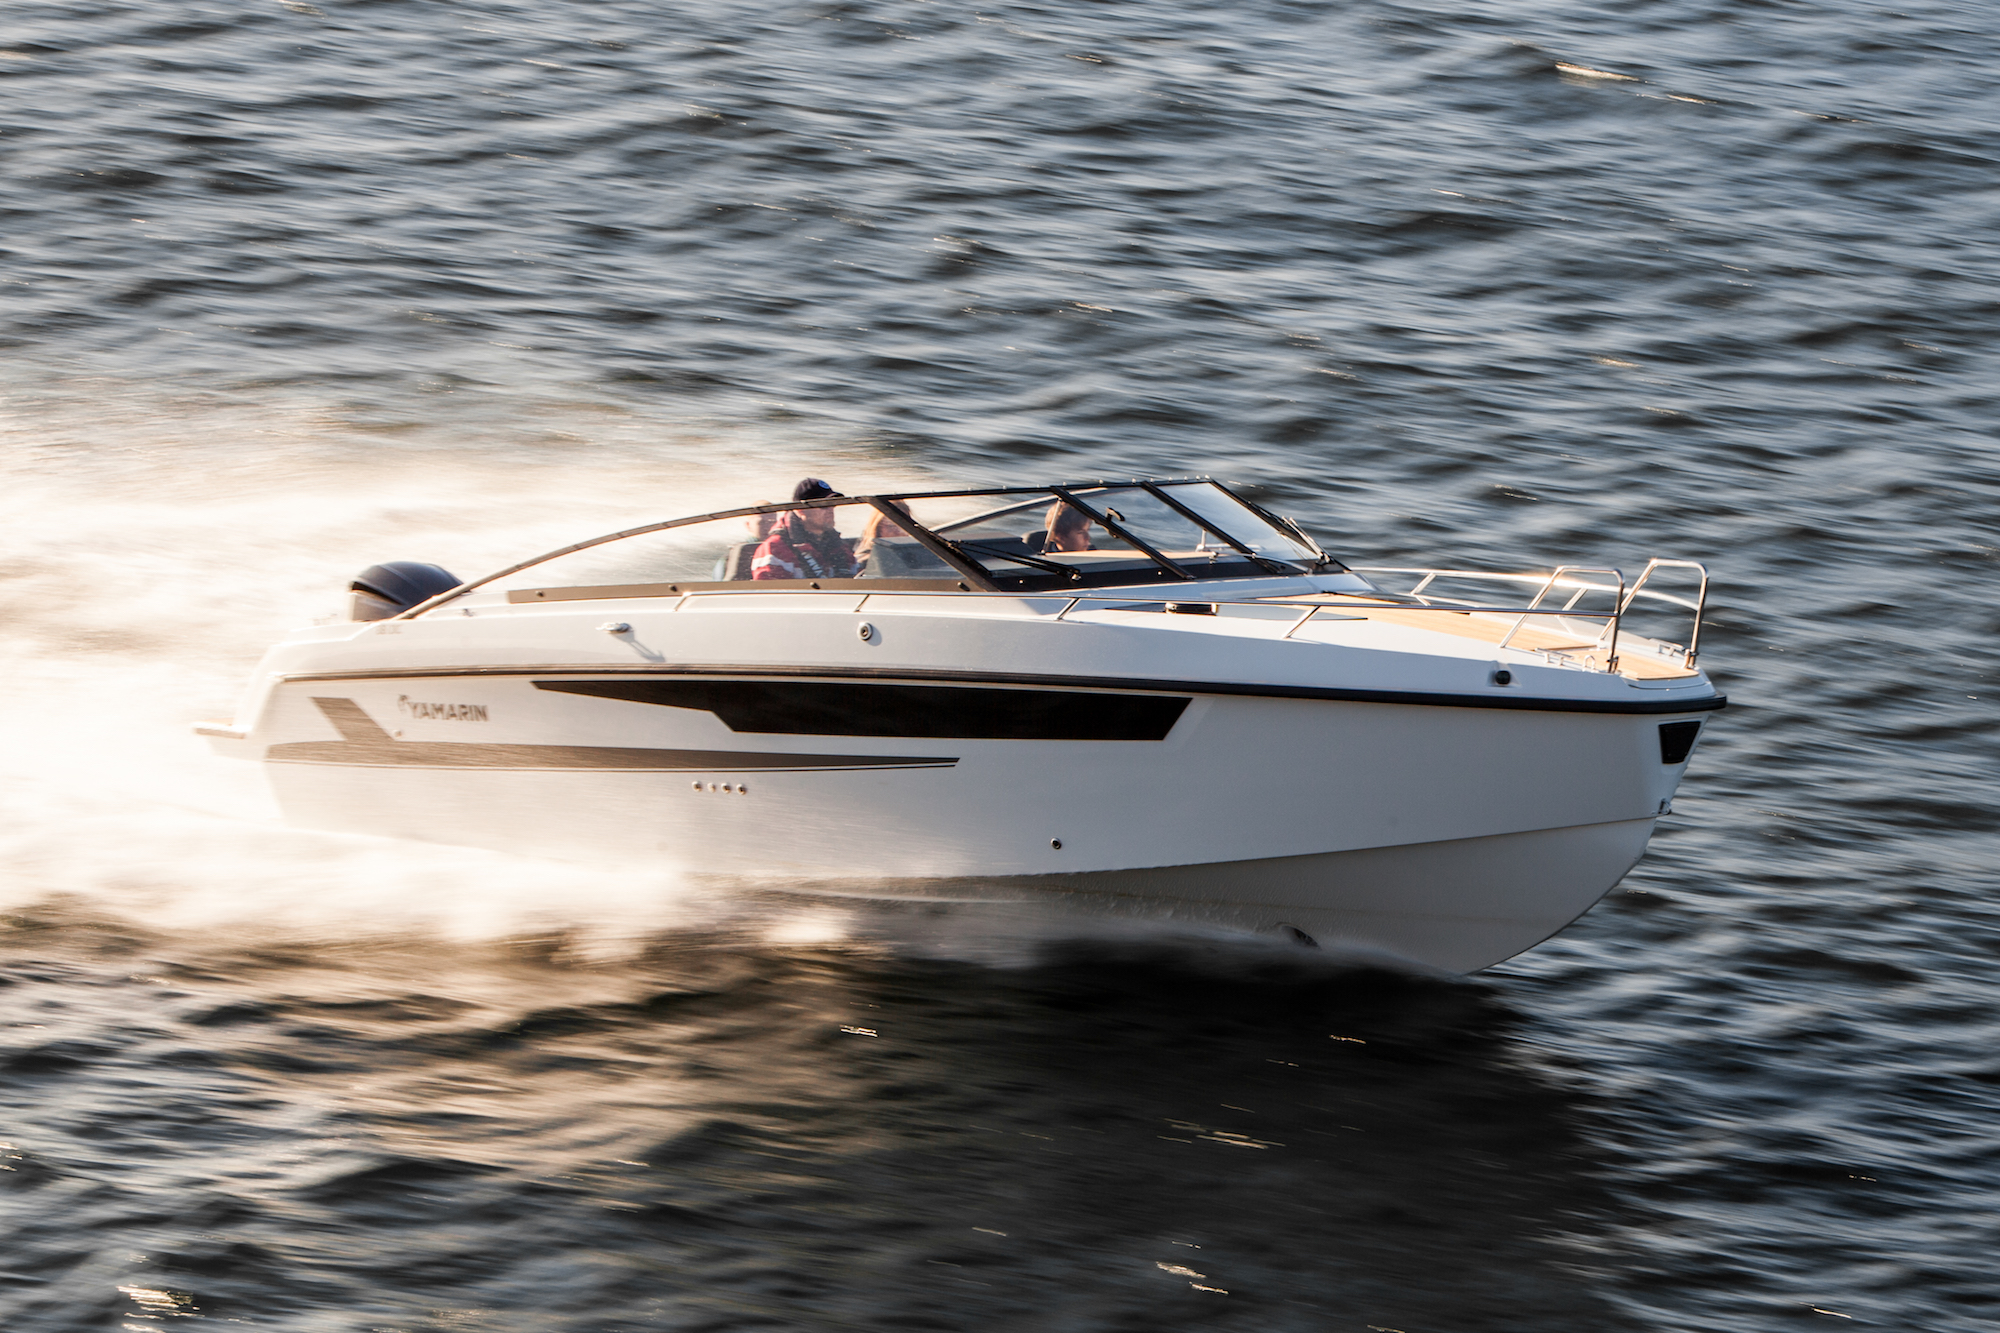 Yamarin 88 DC will be presented at the Düsseldorf boat show